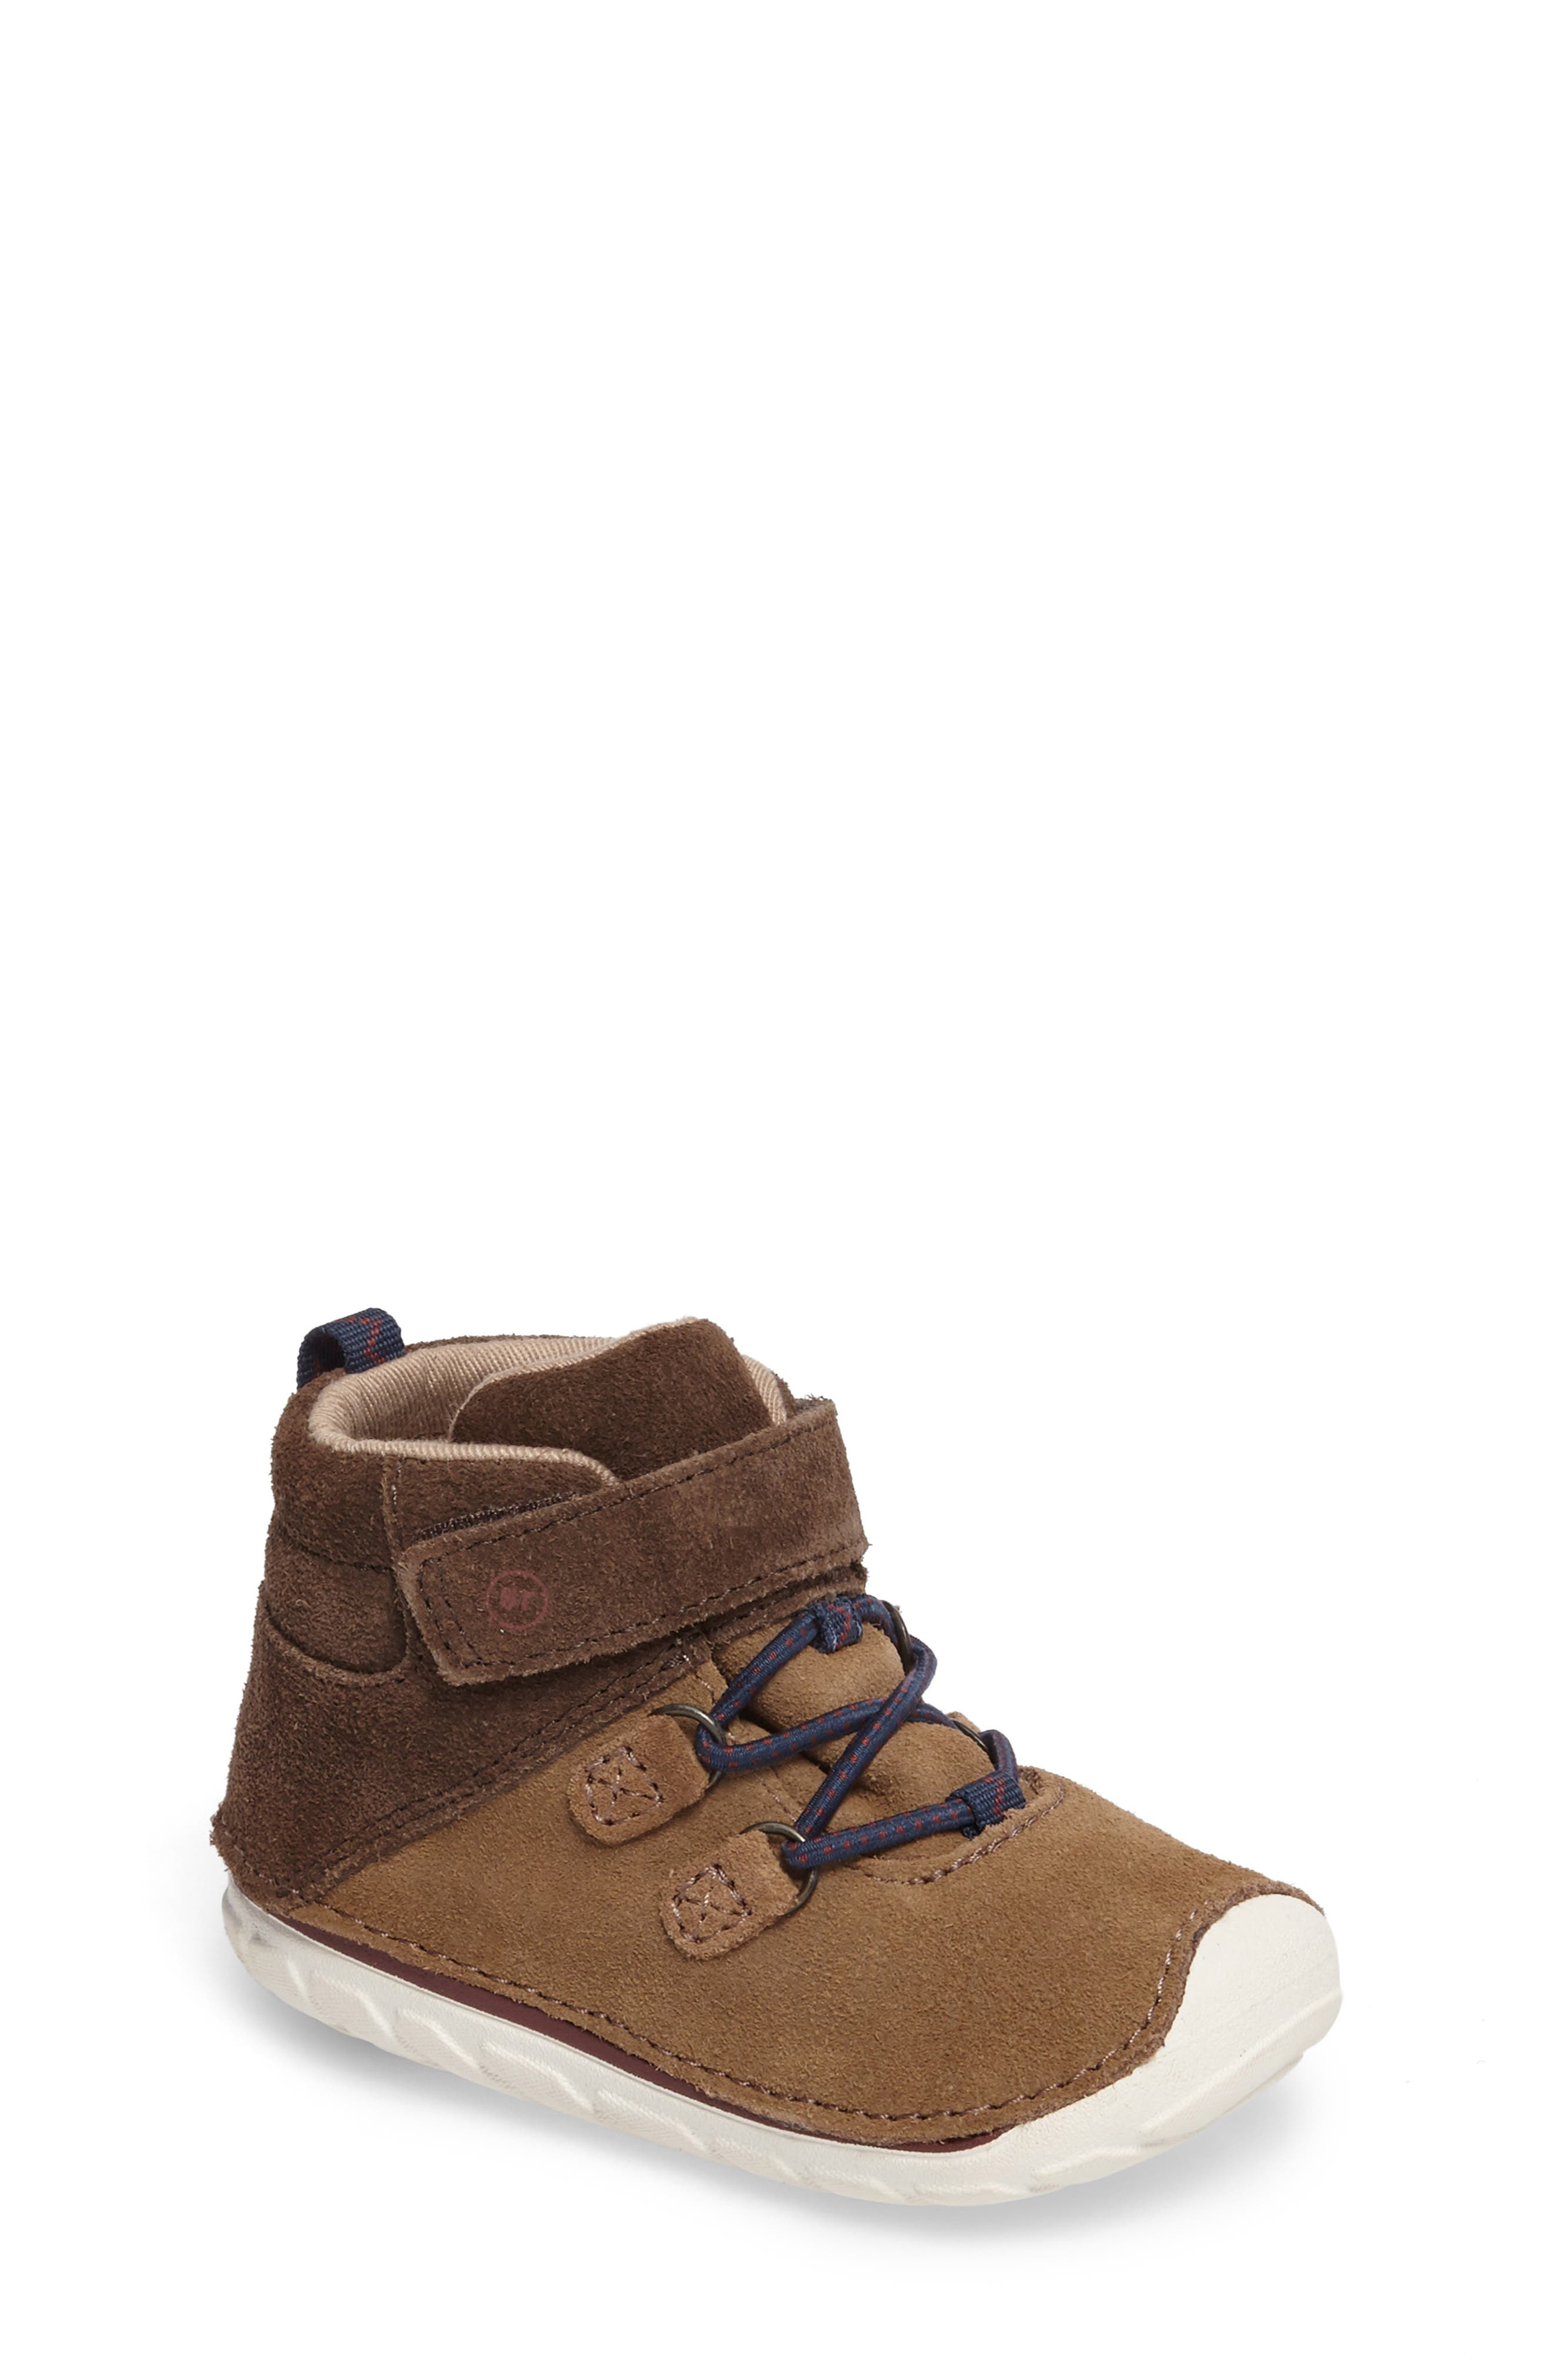 Soft Motion<sup>™</sup> Oliver High Top Sneaker,                         Main,                         color, BROWN SUEDE